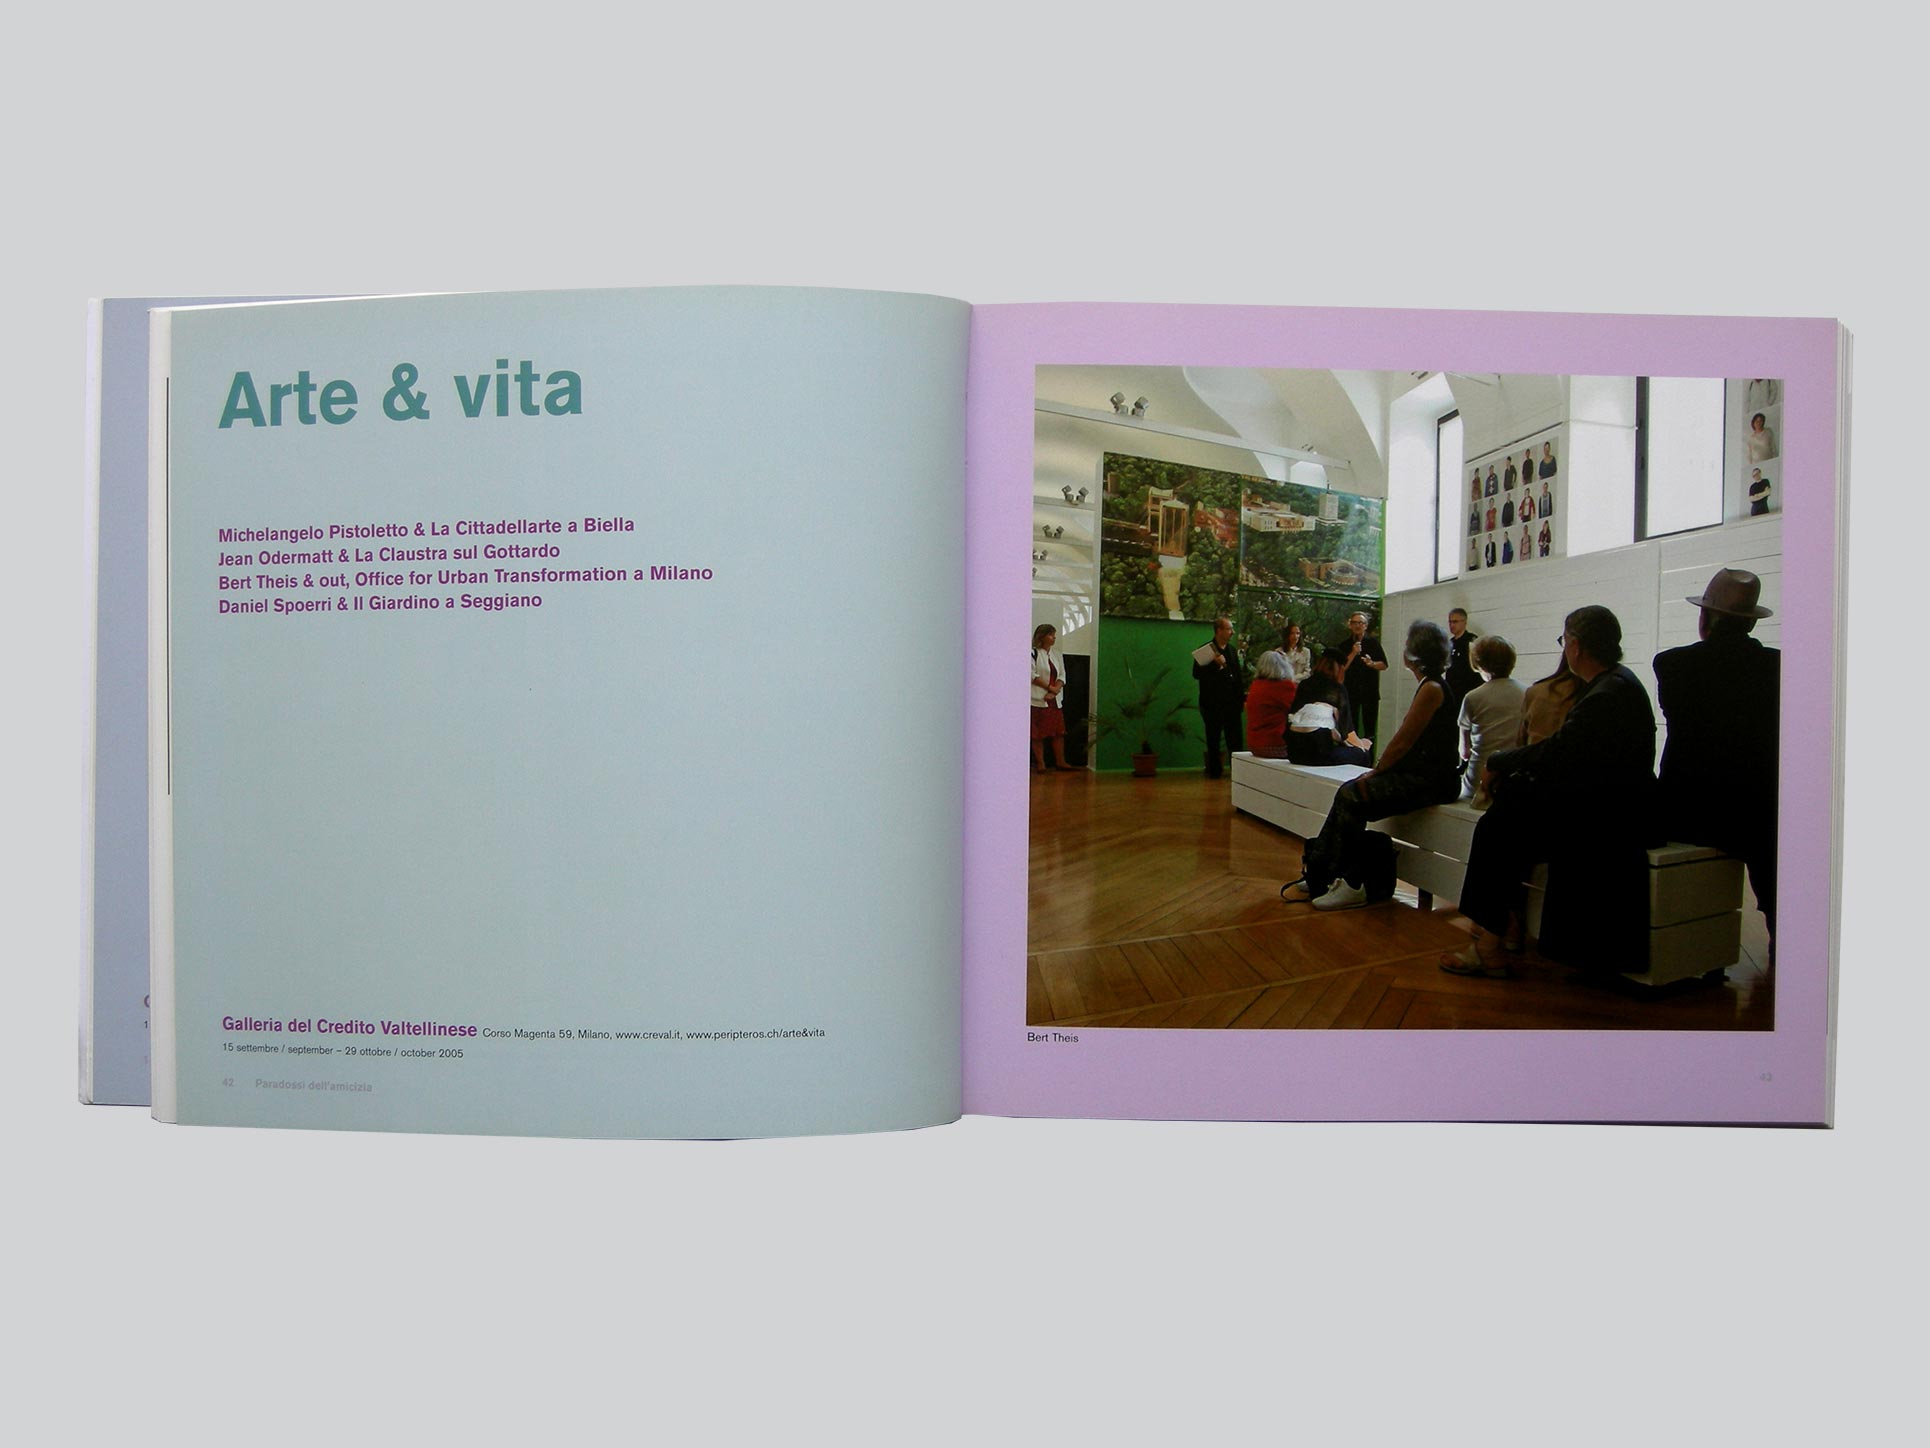 Electa catalogue, ISR Swiss Institute Rome